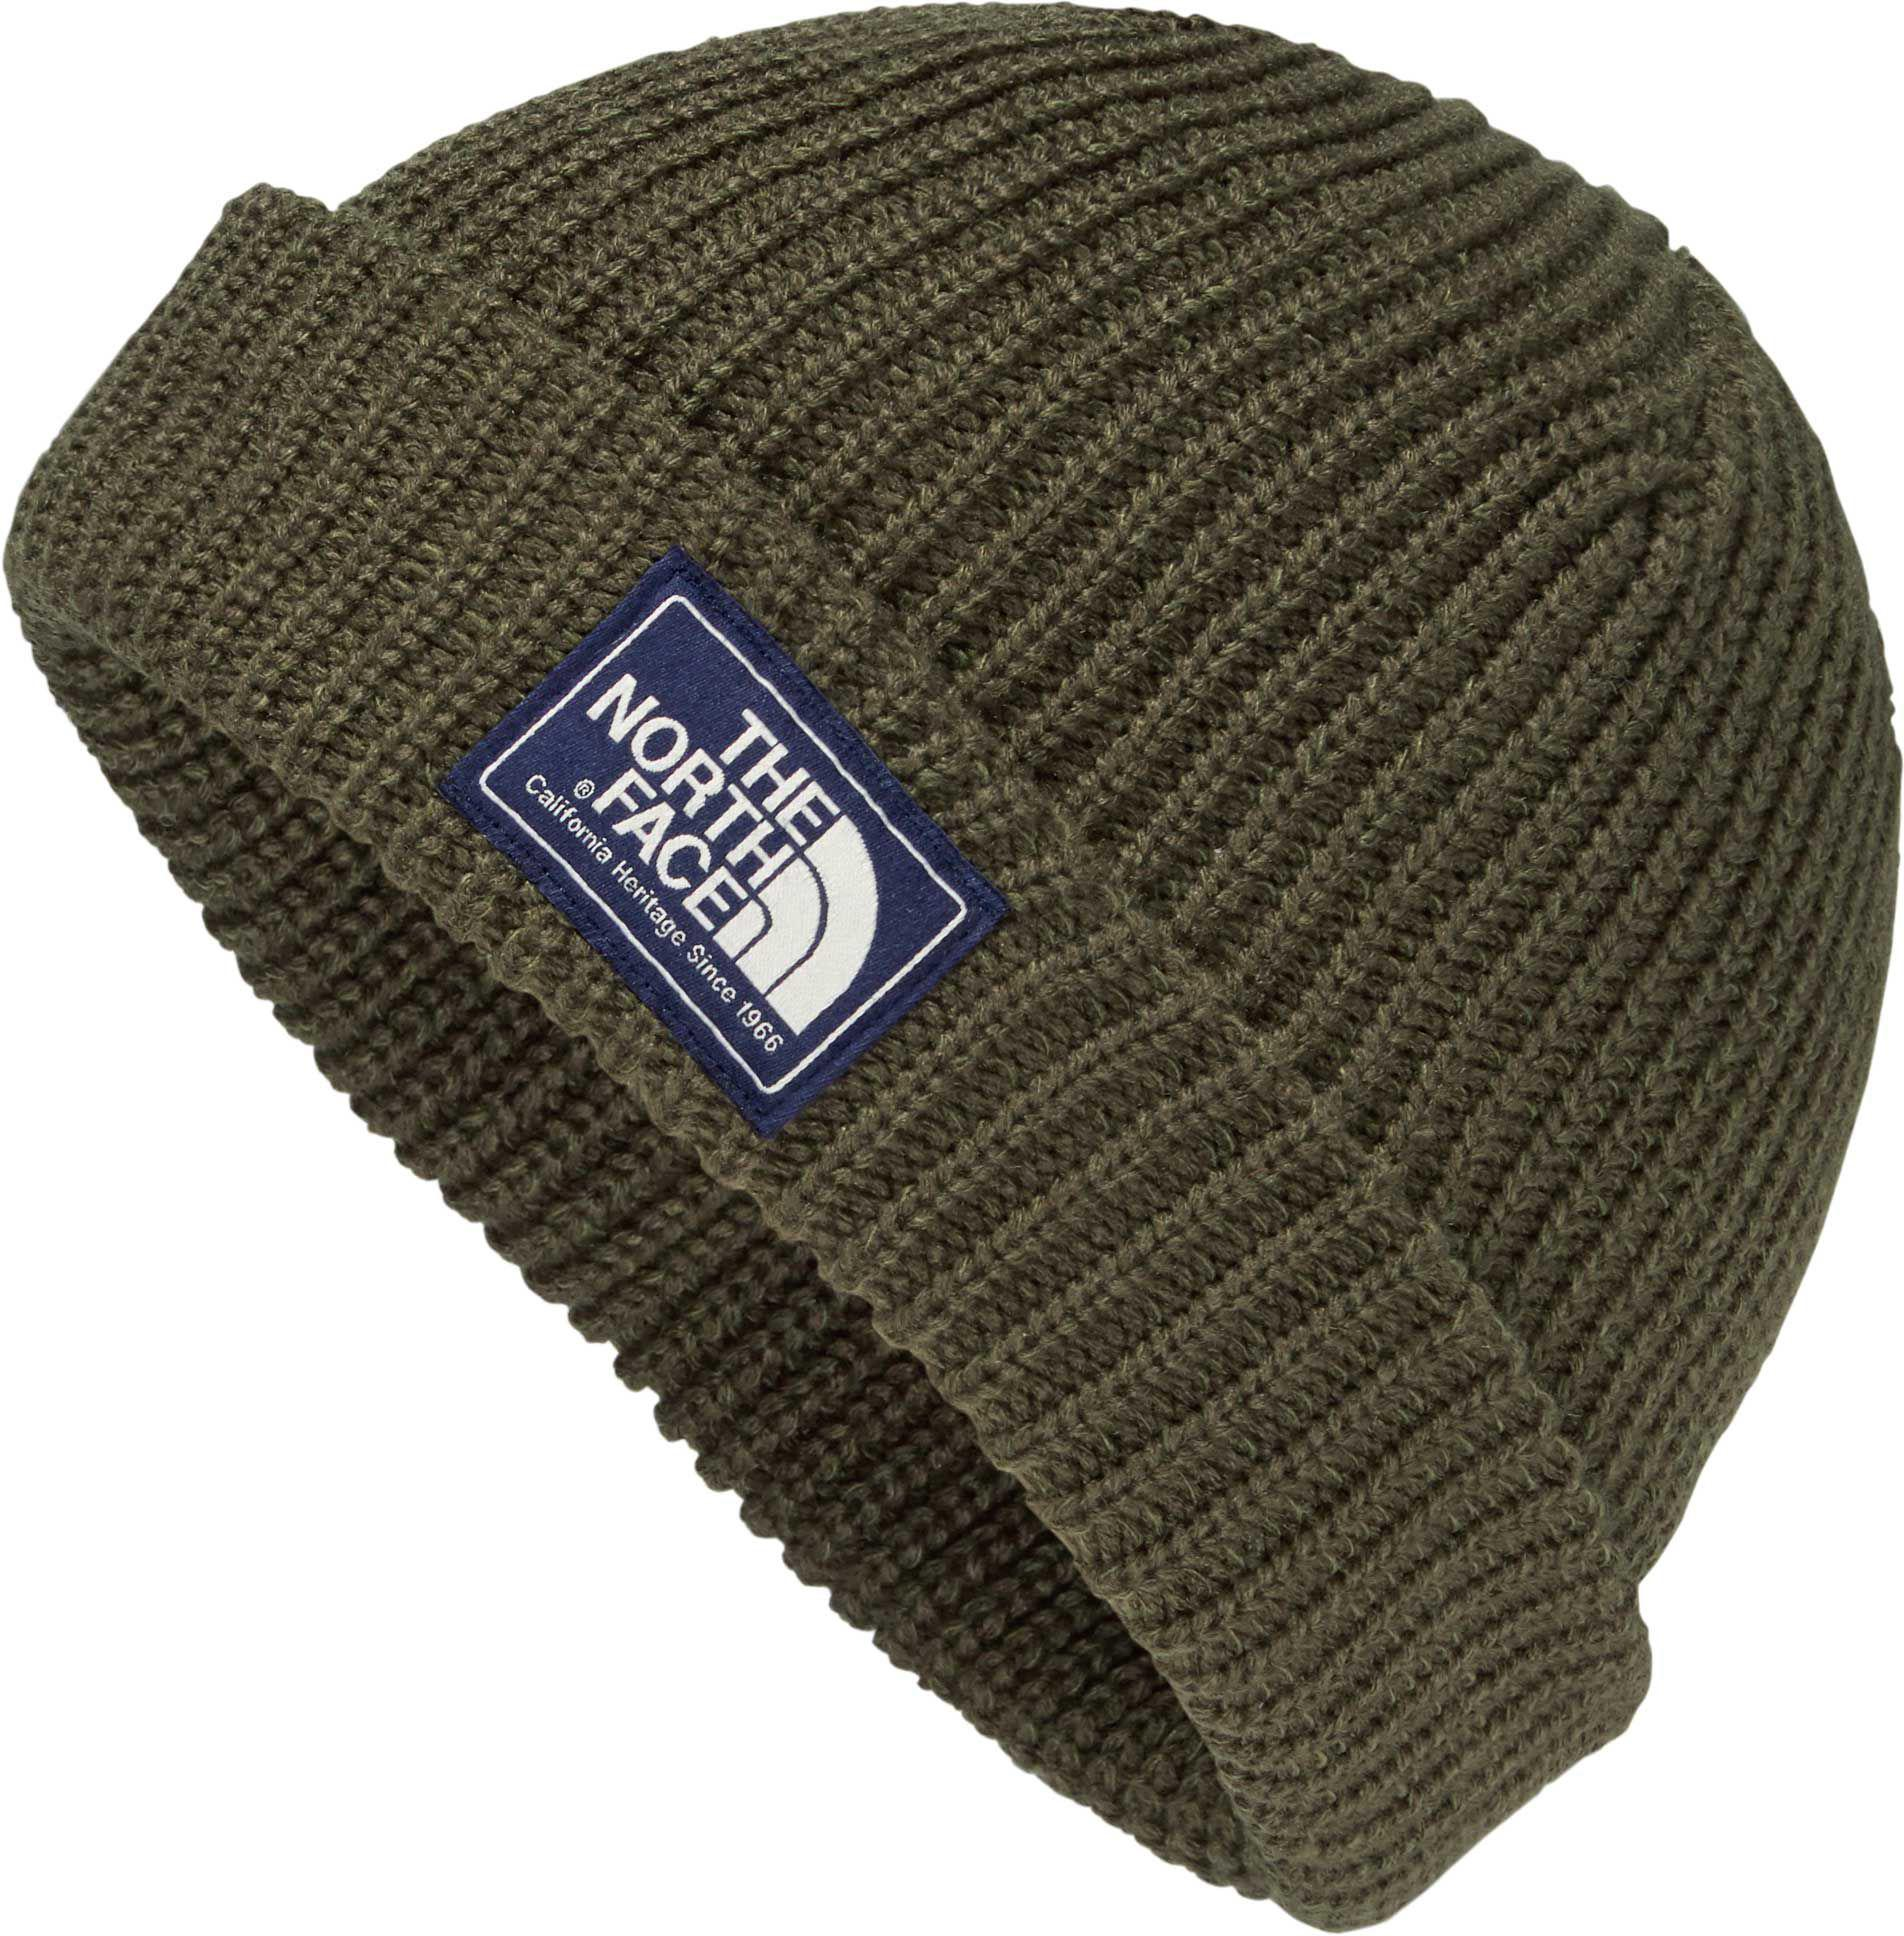 aeca89cac Lyst - The North Face Salty Dog Hat in Green for Men